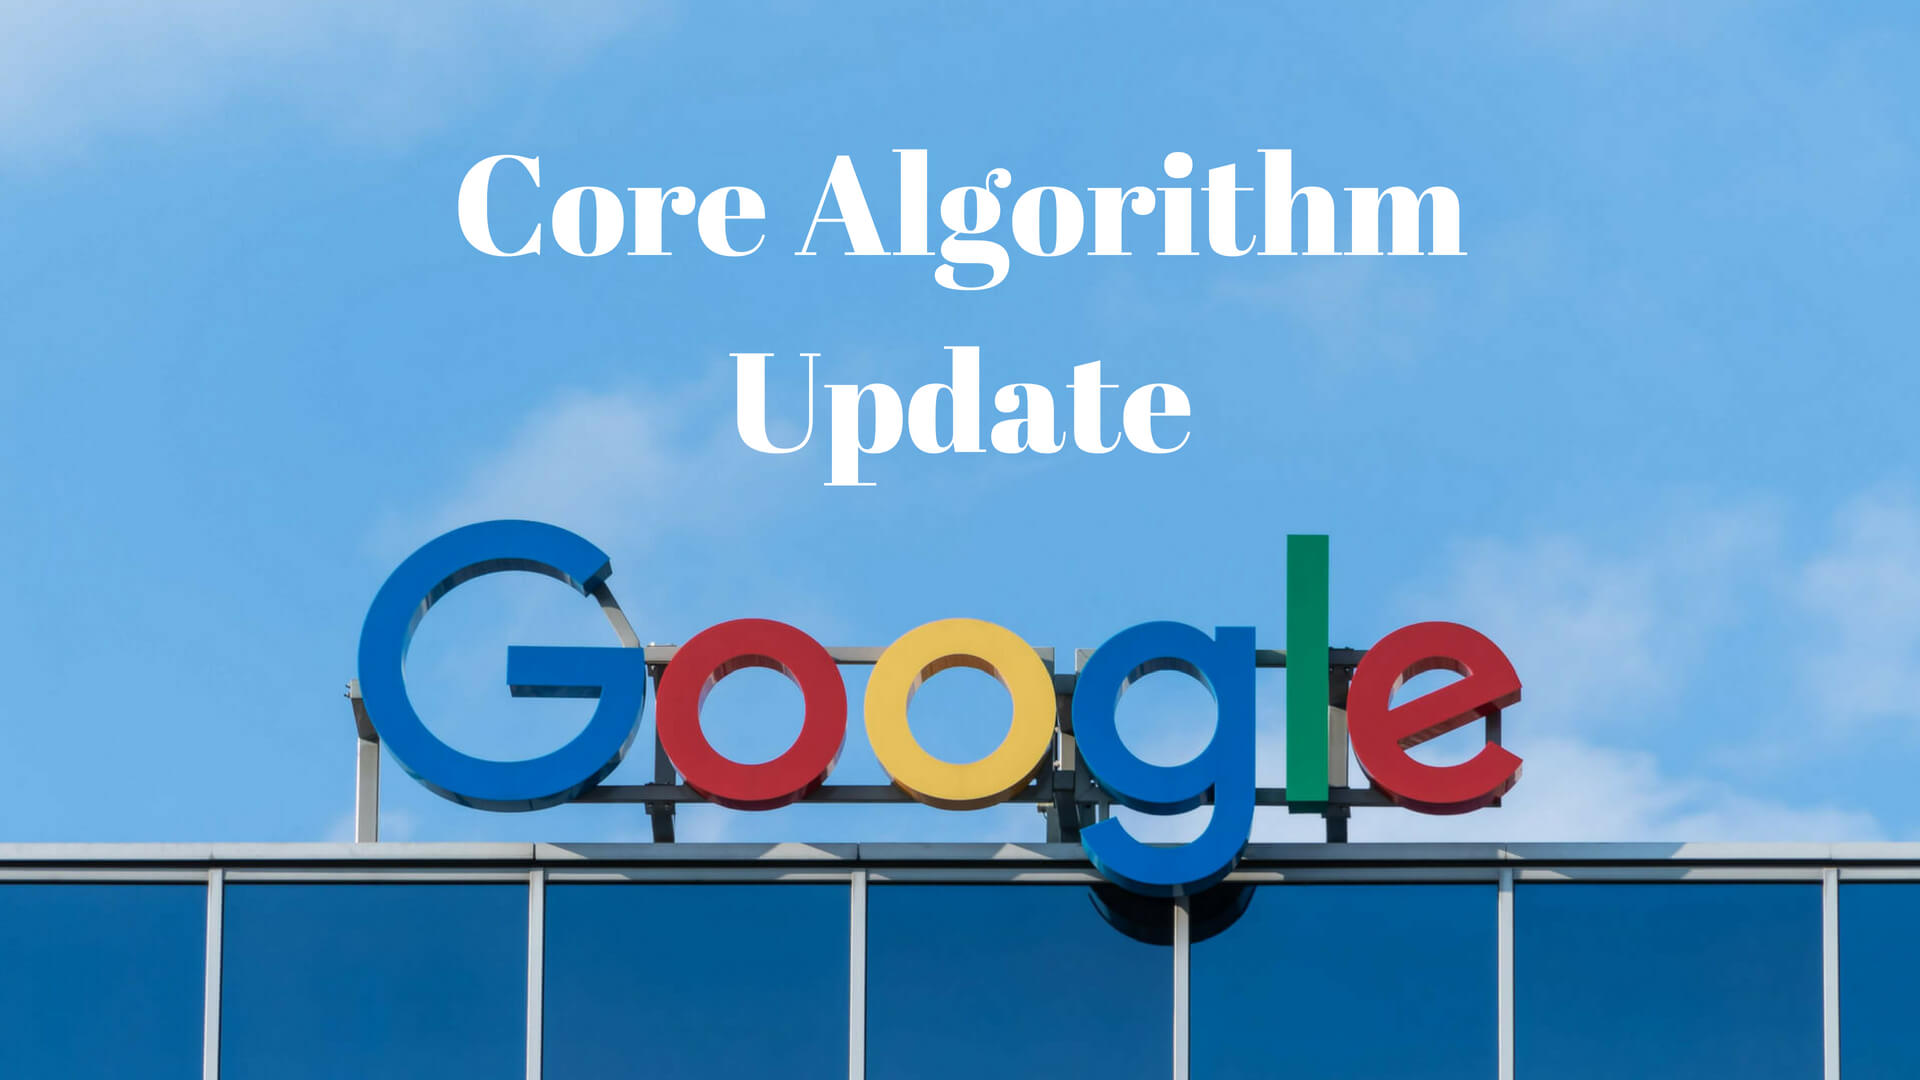 What Google's Core Algorithm Update Is